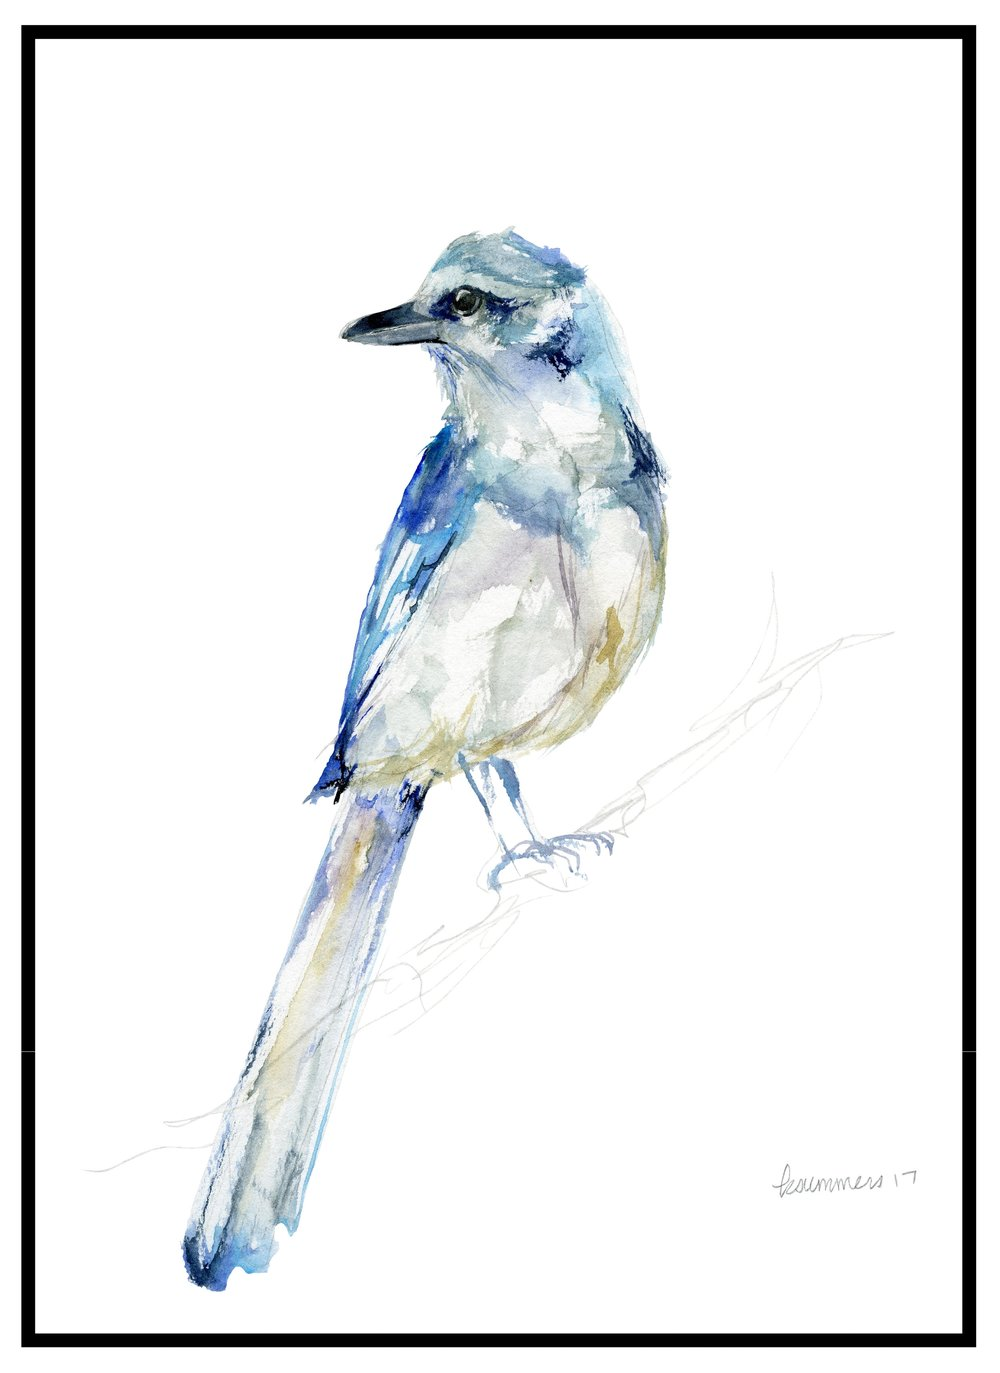 florida scrub jay - archbold biological station  The Florida Scrub Jay Legacy Print was introduced in April 2018.  Ten percent of the proceeds from the Scrub Jay sales is donated to the  Archbold Biological Station .  Archbold Biological Station is an independent research institution located in central Florida.  The Station provides valuable long-term ecological research that provides insight into Florida's environmental state, and benefits countless species including the Florida scrub jay, Florida grasshopper sparrow, and red-cockaded woodpecker.